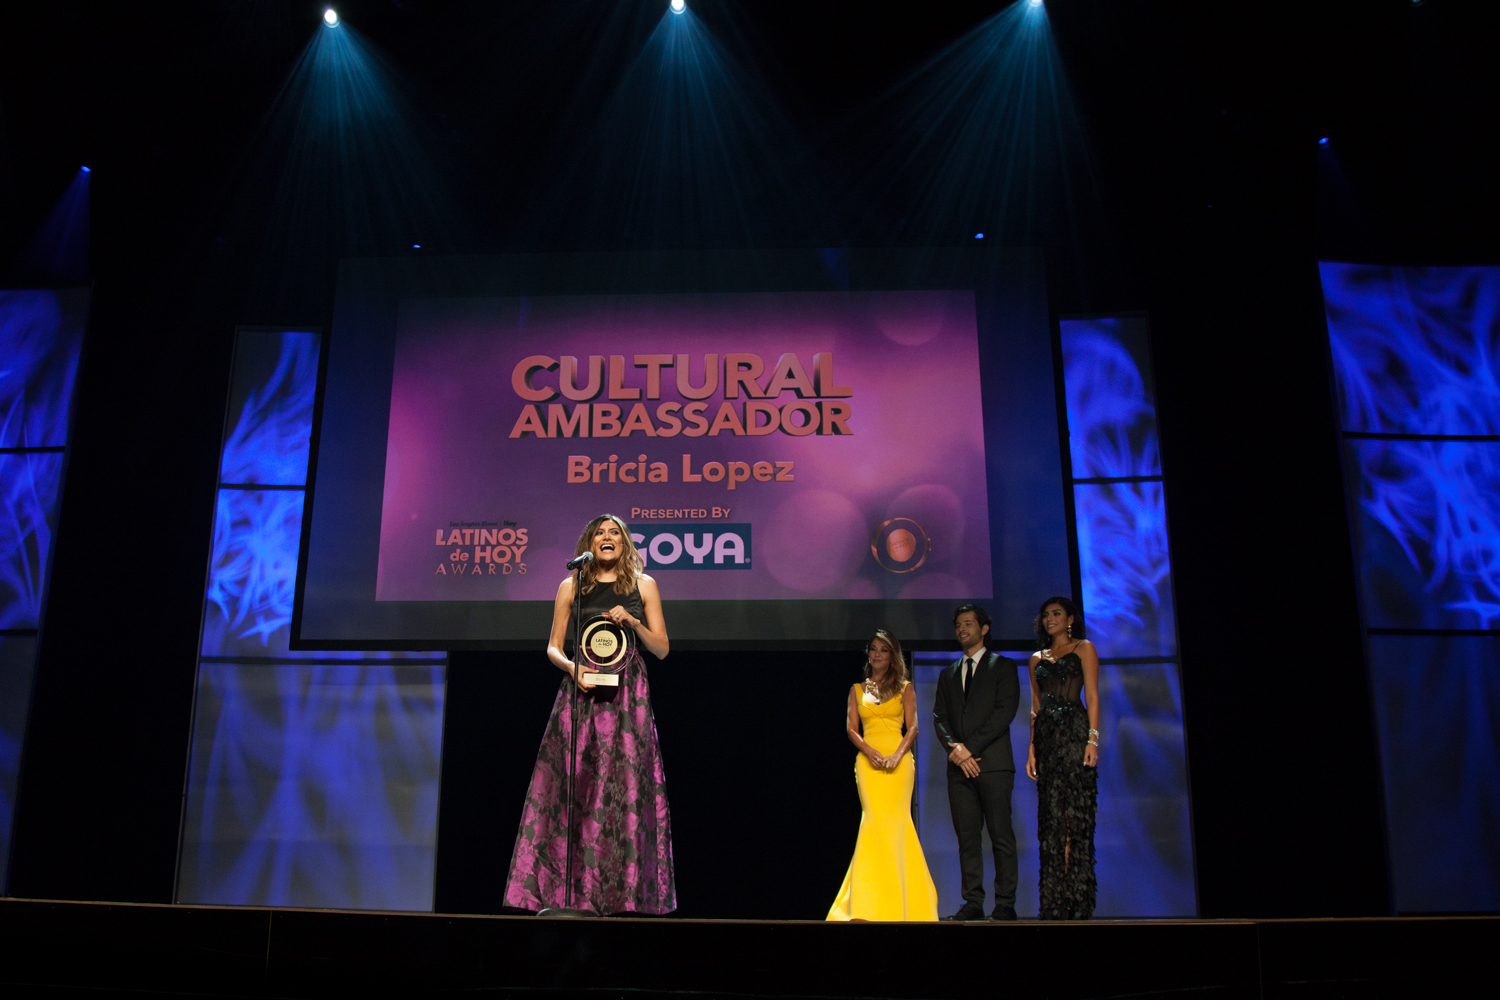 Bricia Lopez, receives the Cultural Ambassador award at the Los Angeles Times and Hoy 2015 Latinos de Hoy Awards at Dolby Theatre in Hollywood.